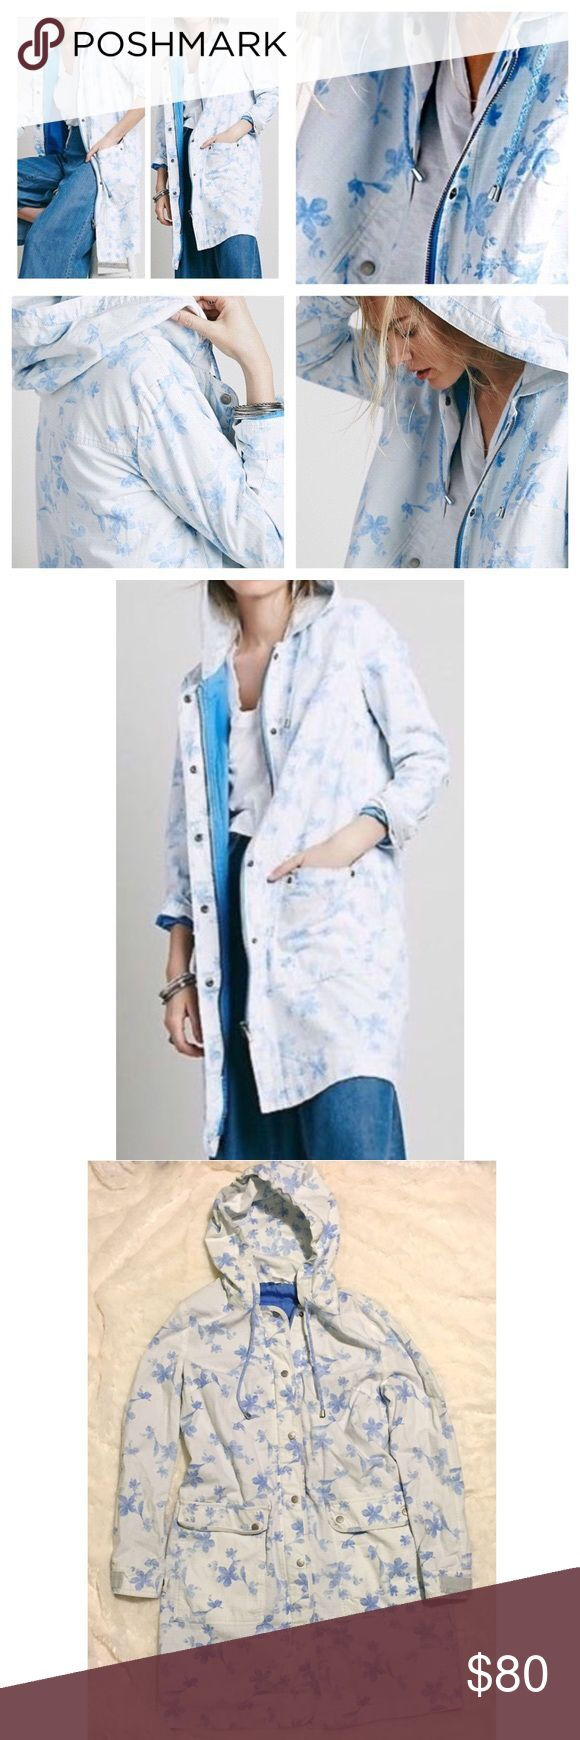 Free People Floral White & Blue Parka Jacket Brand new WITHOUT tags, size Medium. This Free People Floral White & Blue Hooded Long Parka Jacket is so beautiful! This white jacket is adorned with gorgeous blue flowers all over! The perfect jacket for spring. Two front pockets with snap buttons. Grey detailing at the cuffs. Such a feminine, cute and unique jacket! Zipper closure with silver snap buttons. Blue lining inside. Free People Jackets & Coats